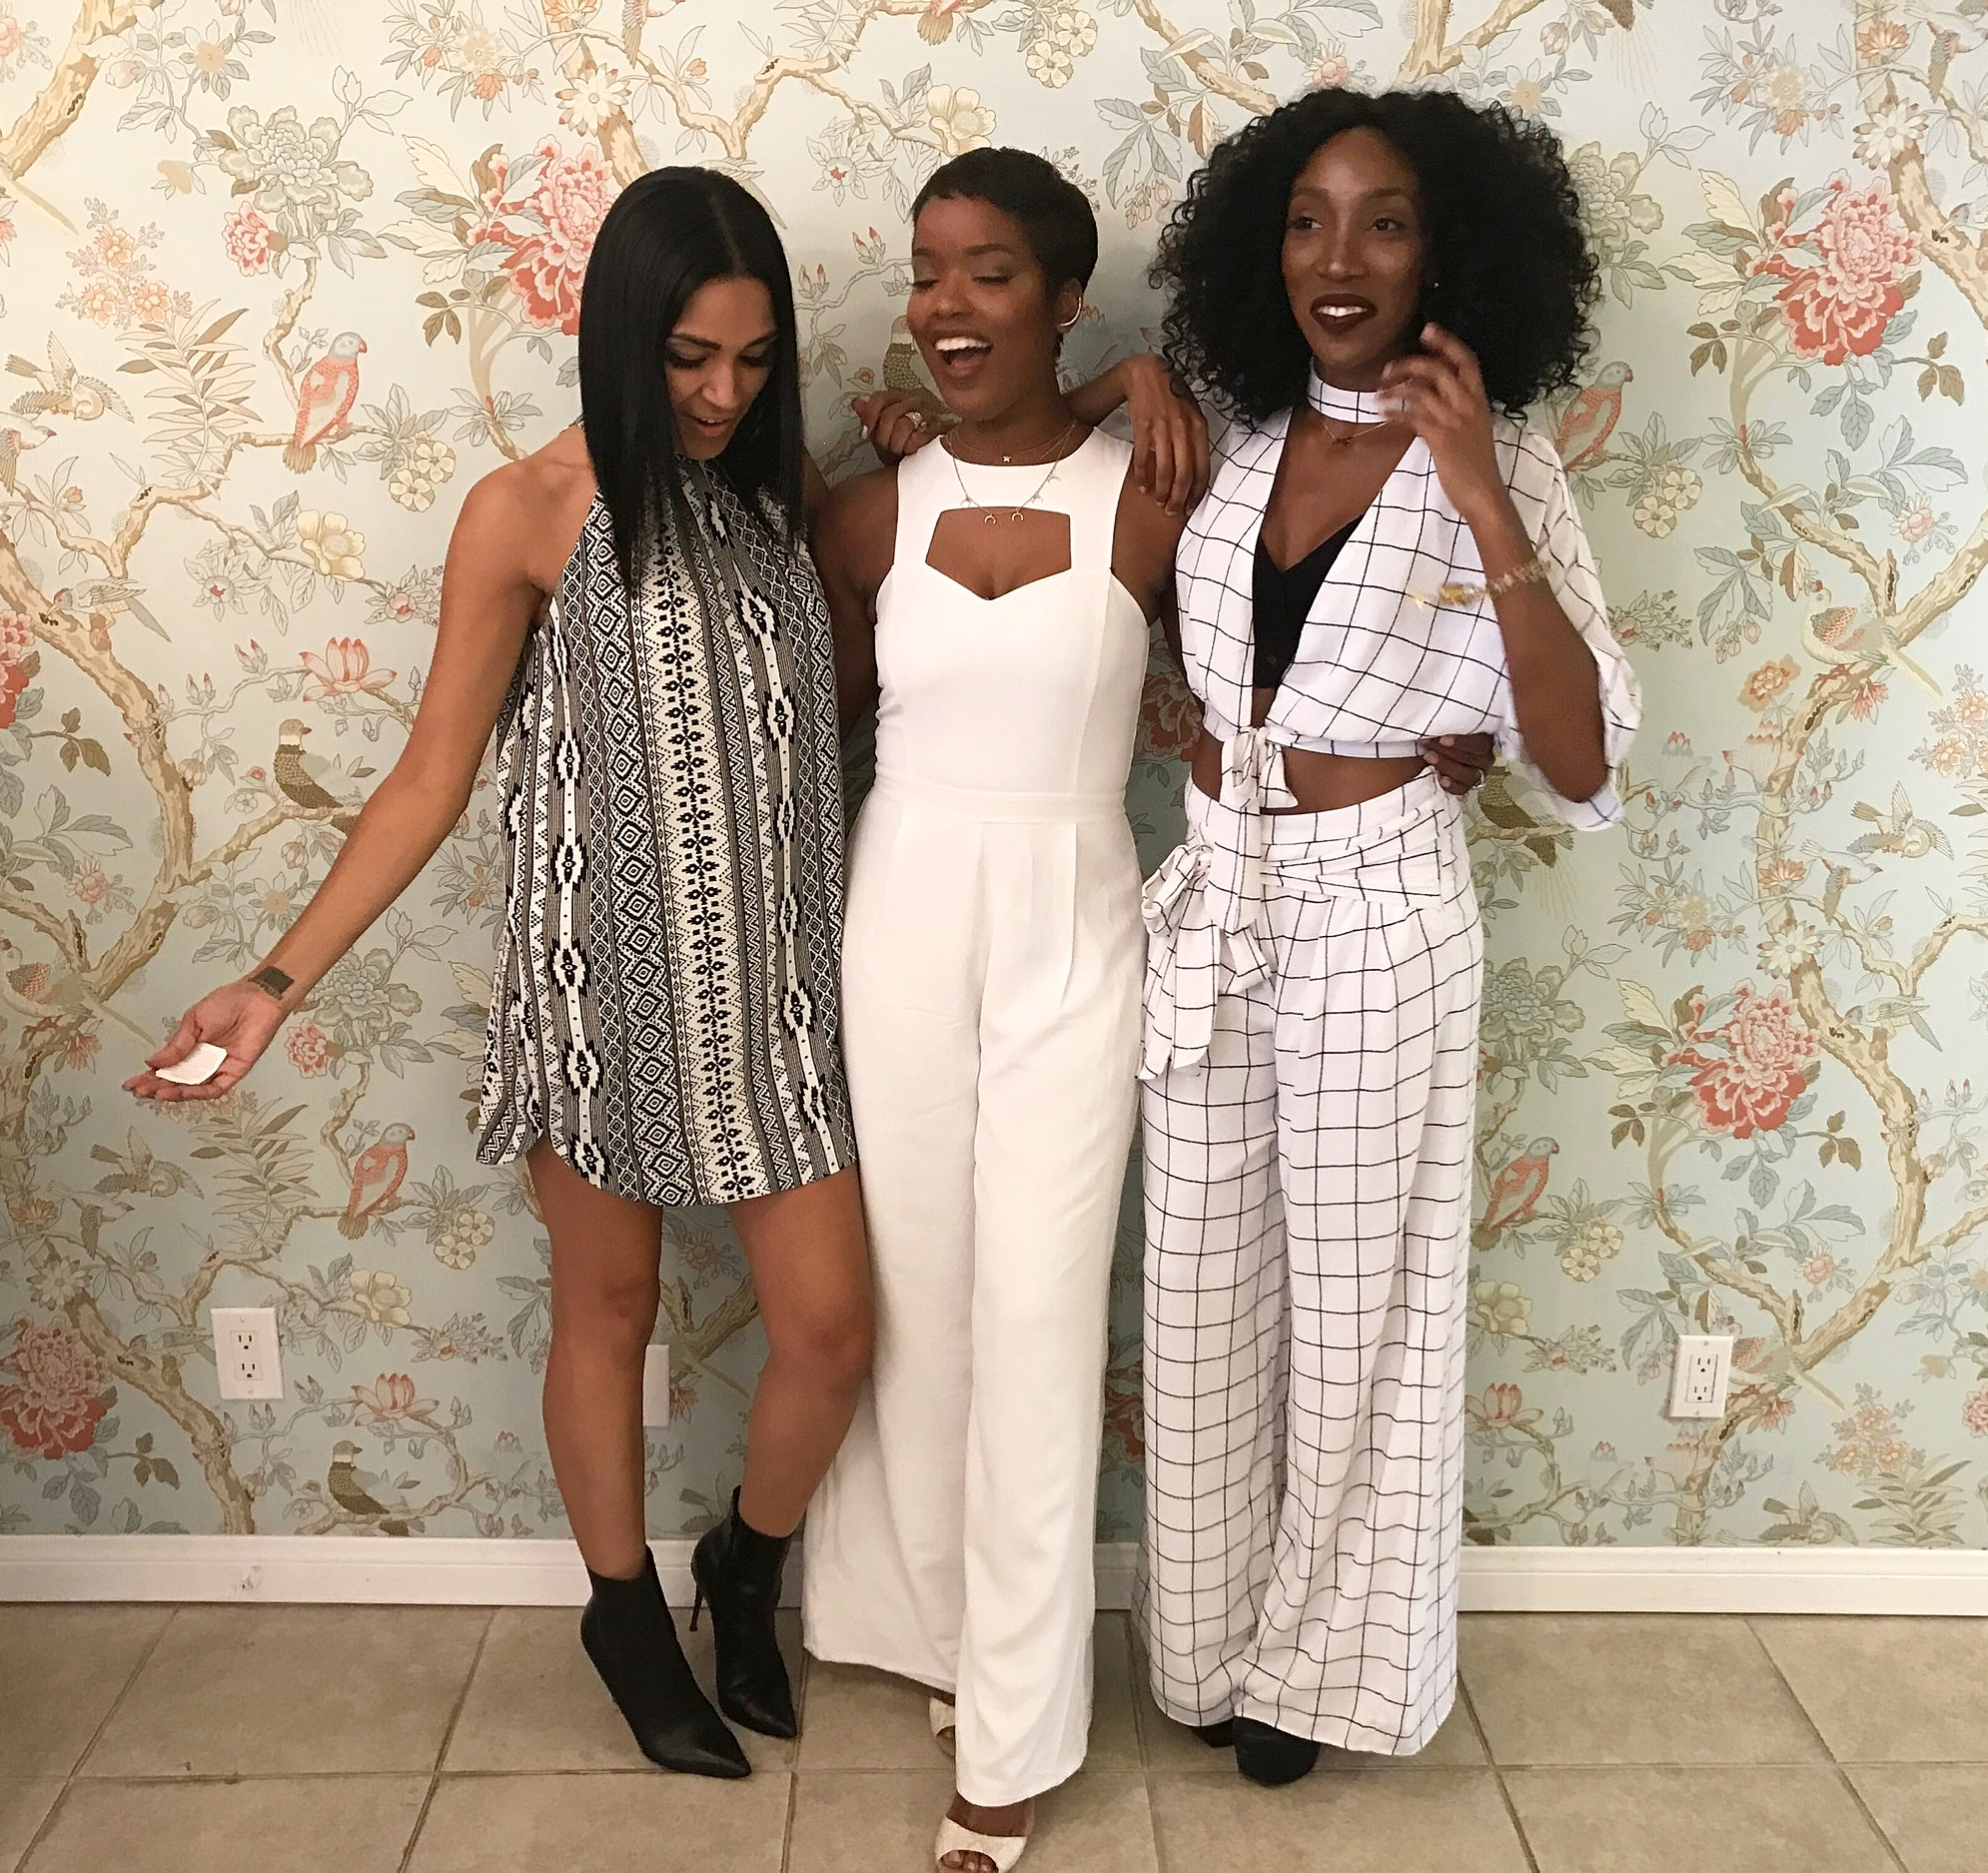 Candids with Pashana and Kennesha!! It's so funny, because we all picked out a look when we arrived to the store to wear for the night and we just by chance happen to coordinate. Not planned at all!!